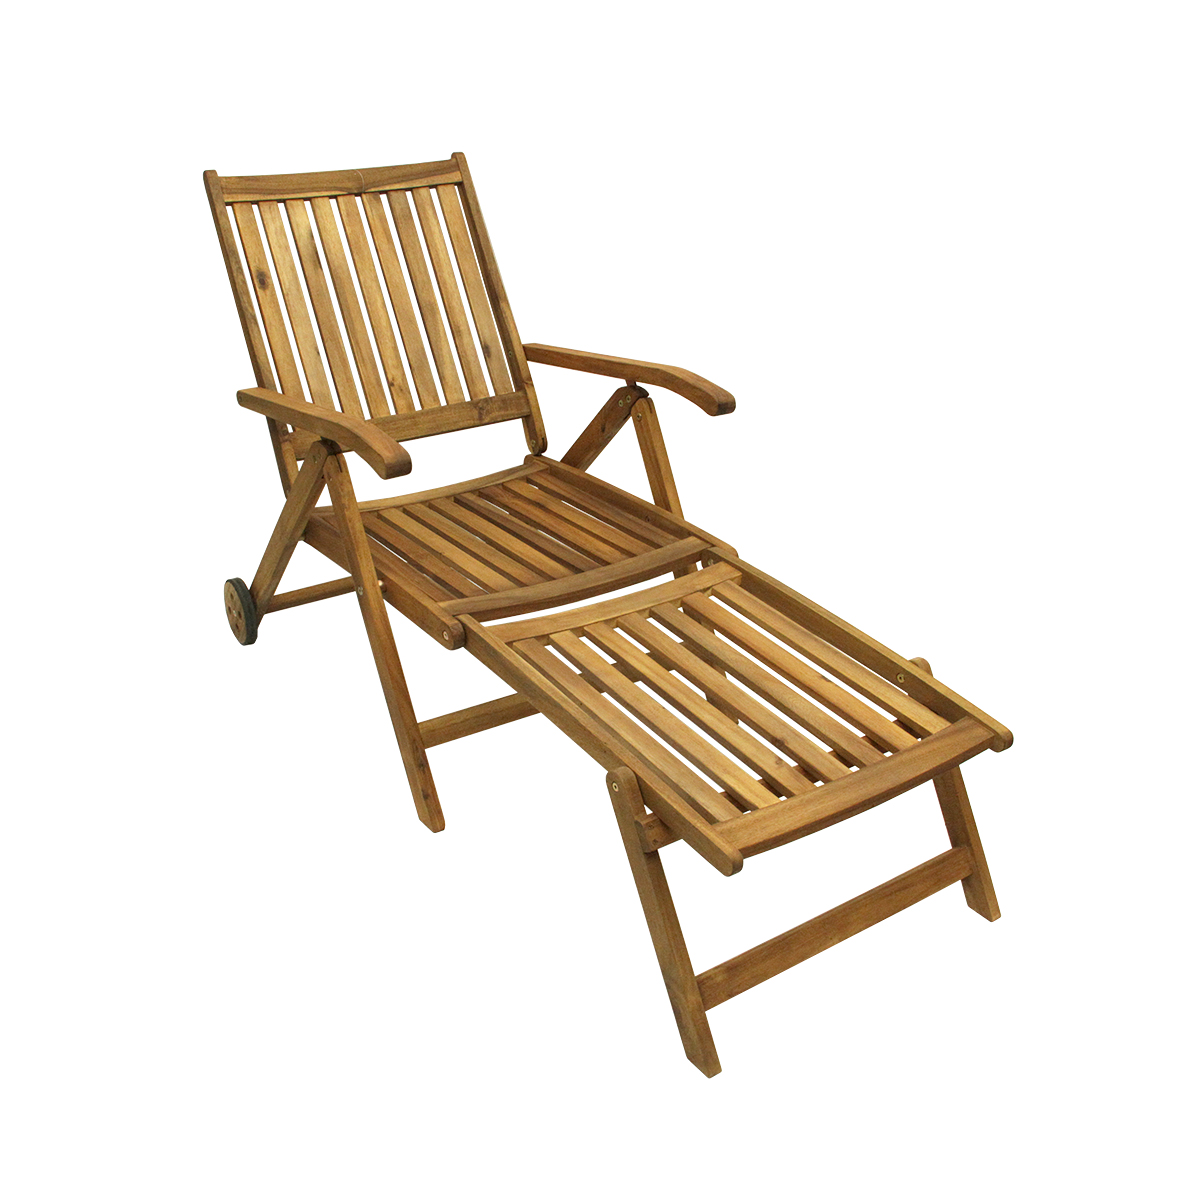 "54.5"" Acacia Wood Outdoor Patio Furniture Sun Lounger Chair"